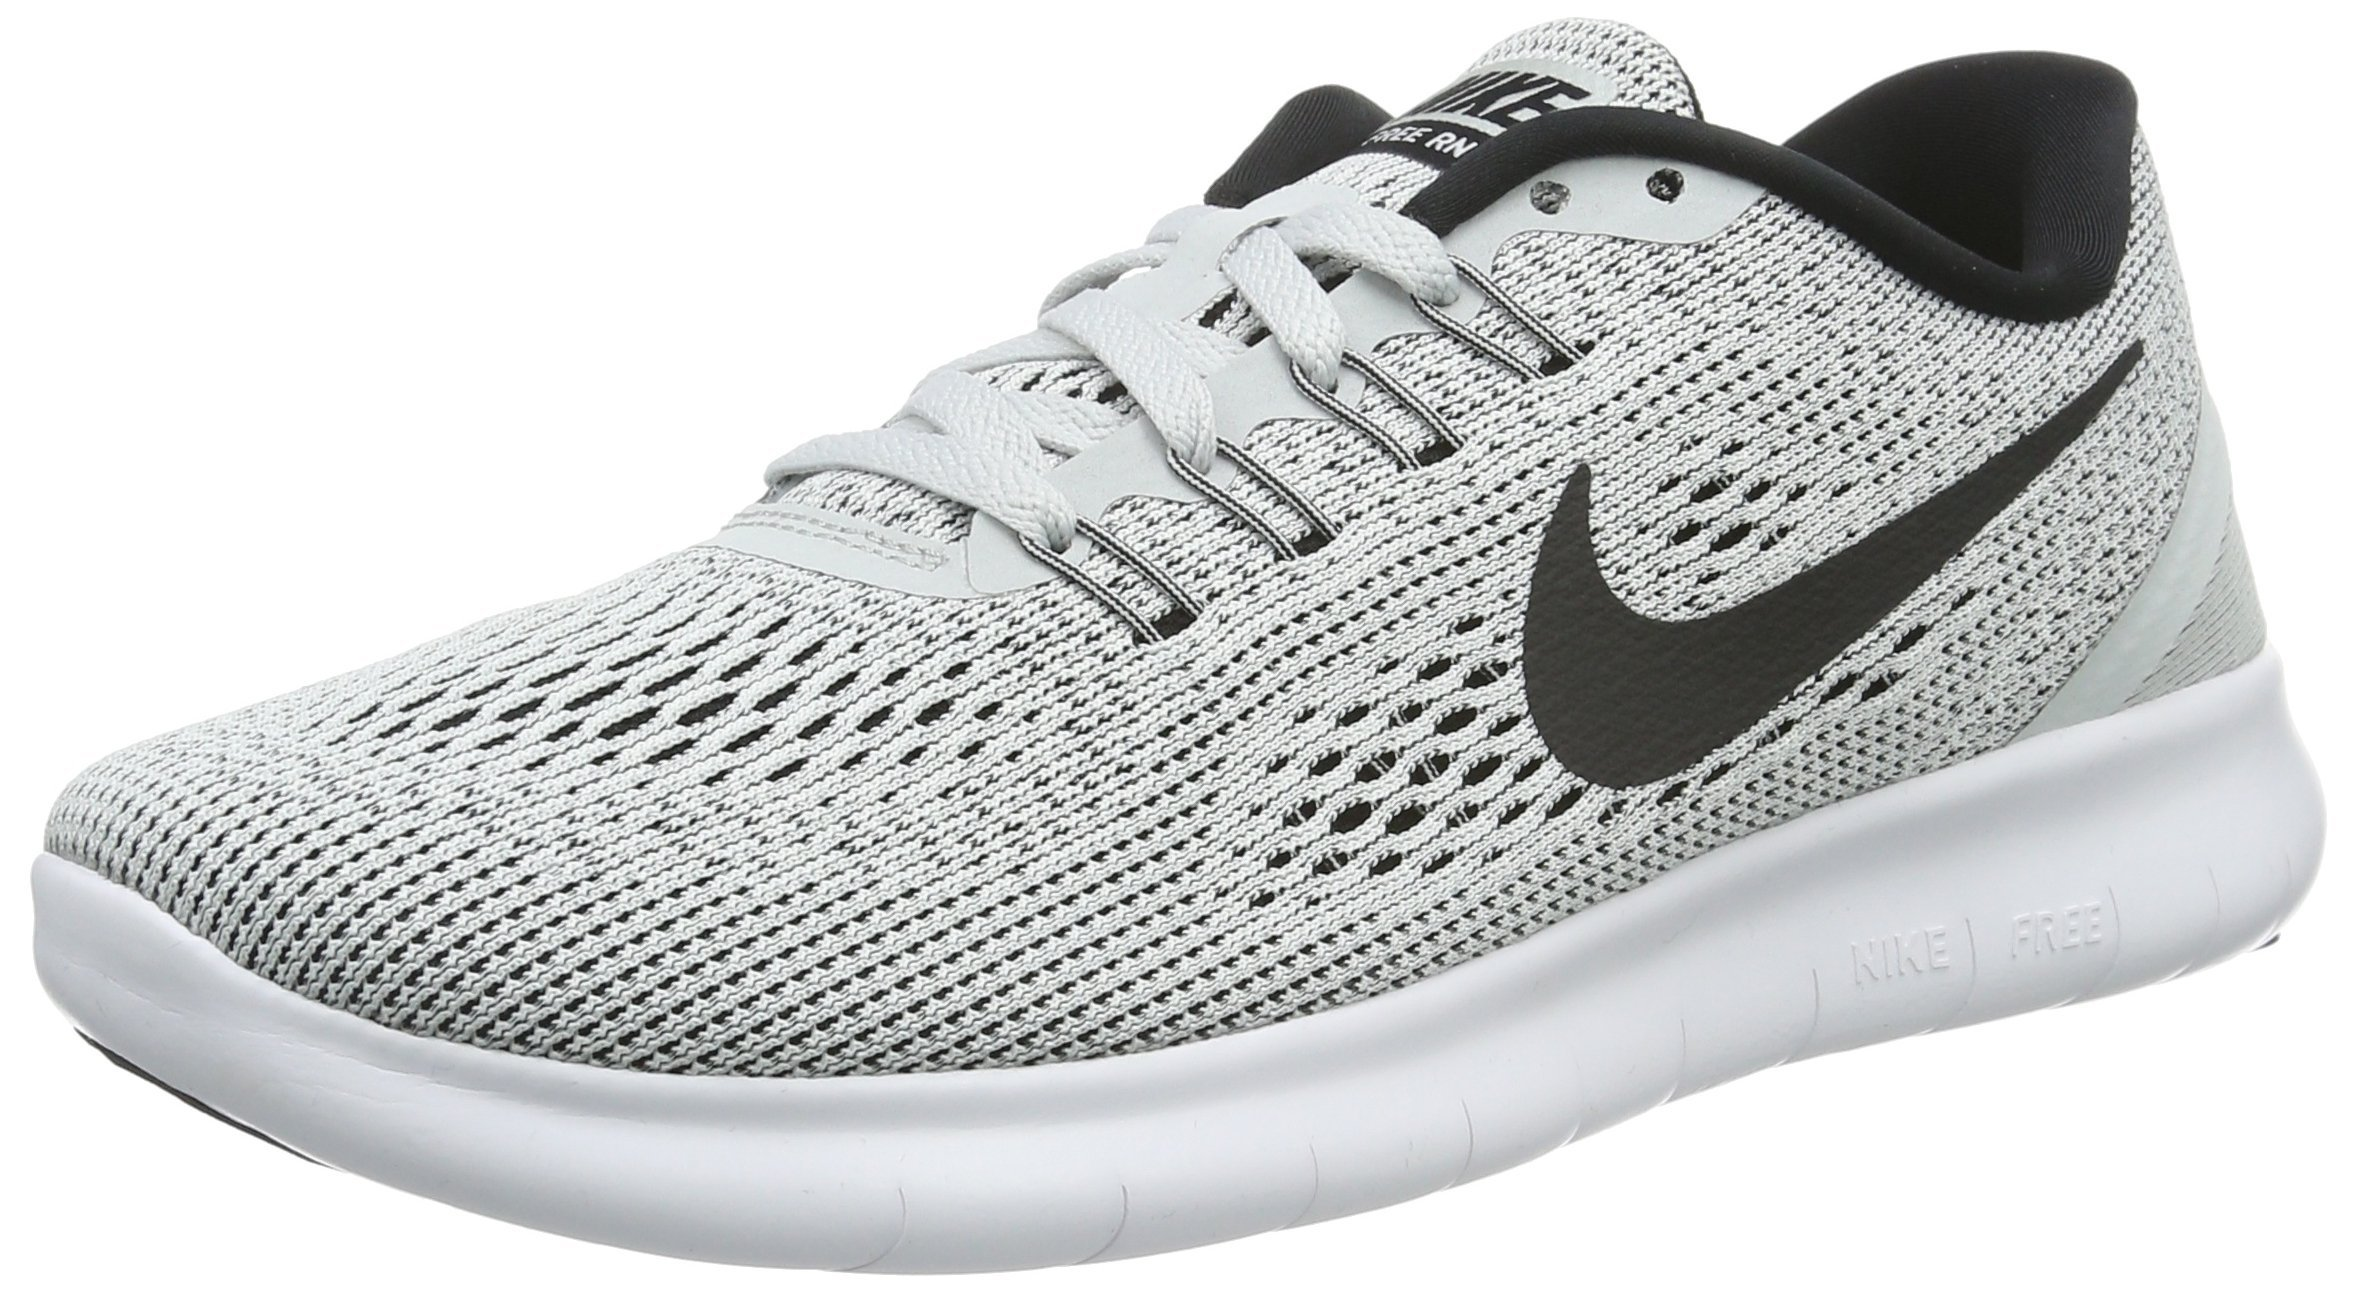 Nike Womens Free RN Running Shoe White/Black/Pure Platinum 6 by Nike (Image #1)